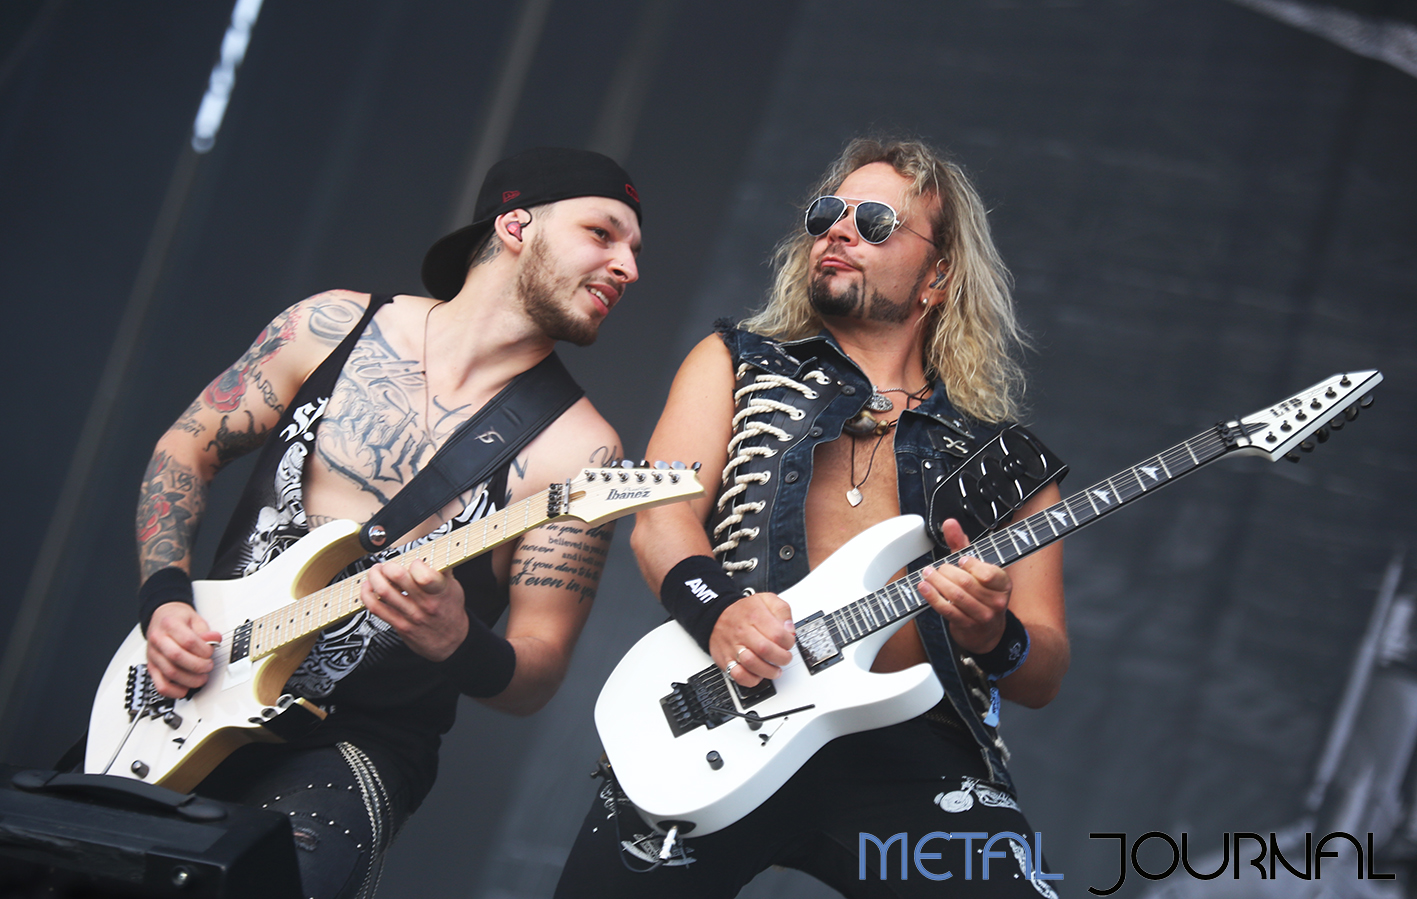 udo - metal journal rock fest barcelona 2019 pic 9